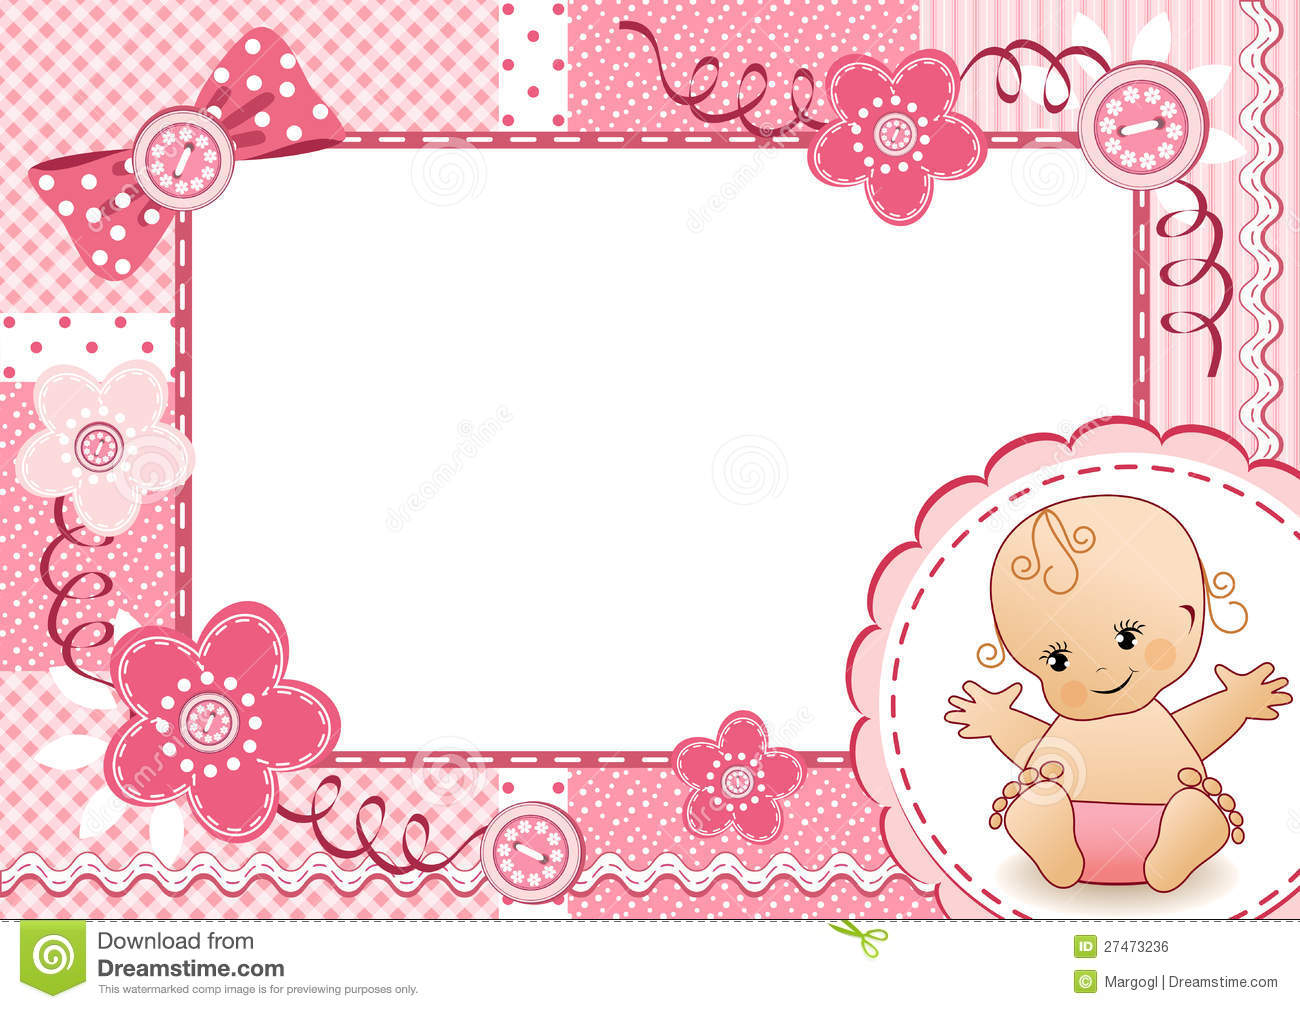 Imagenes para baby shower ni+-a clipart clipart black and white 26 Luxury Baby Shower Frame - baby shower clipart black and white